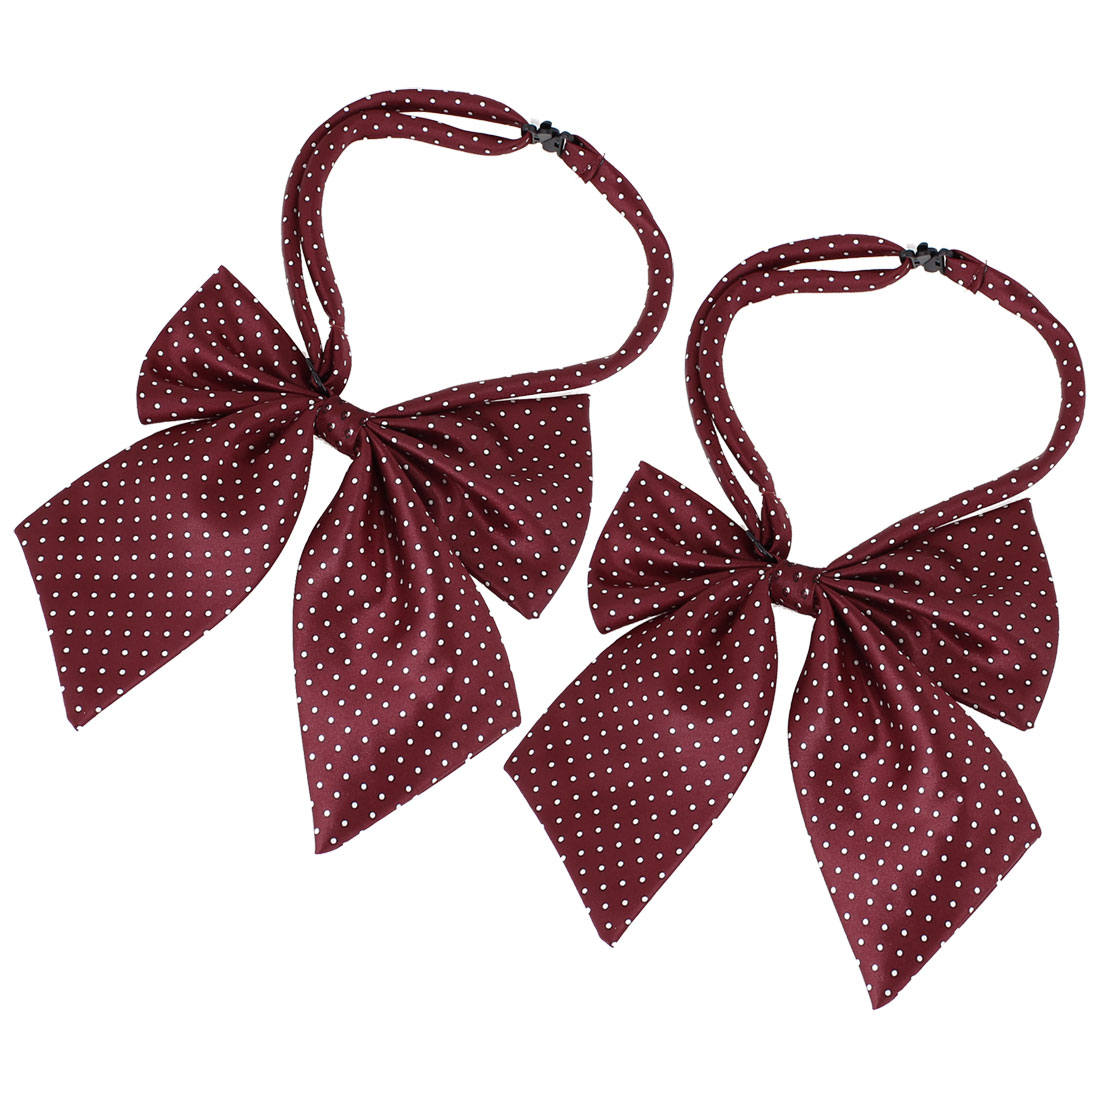 2 Pcs Men Ladies White Mini Dots Printed Burgundy Pre-Tied Bowtie